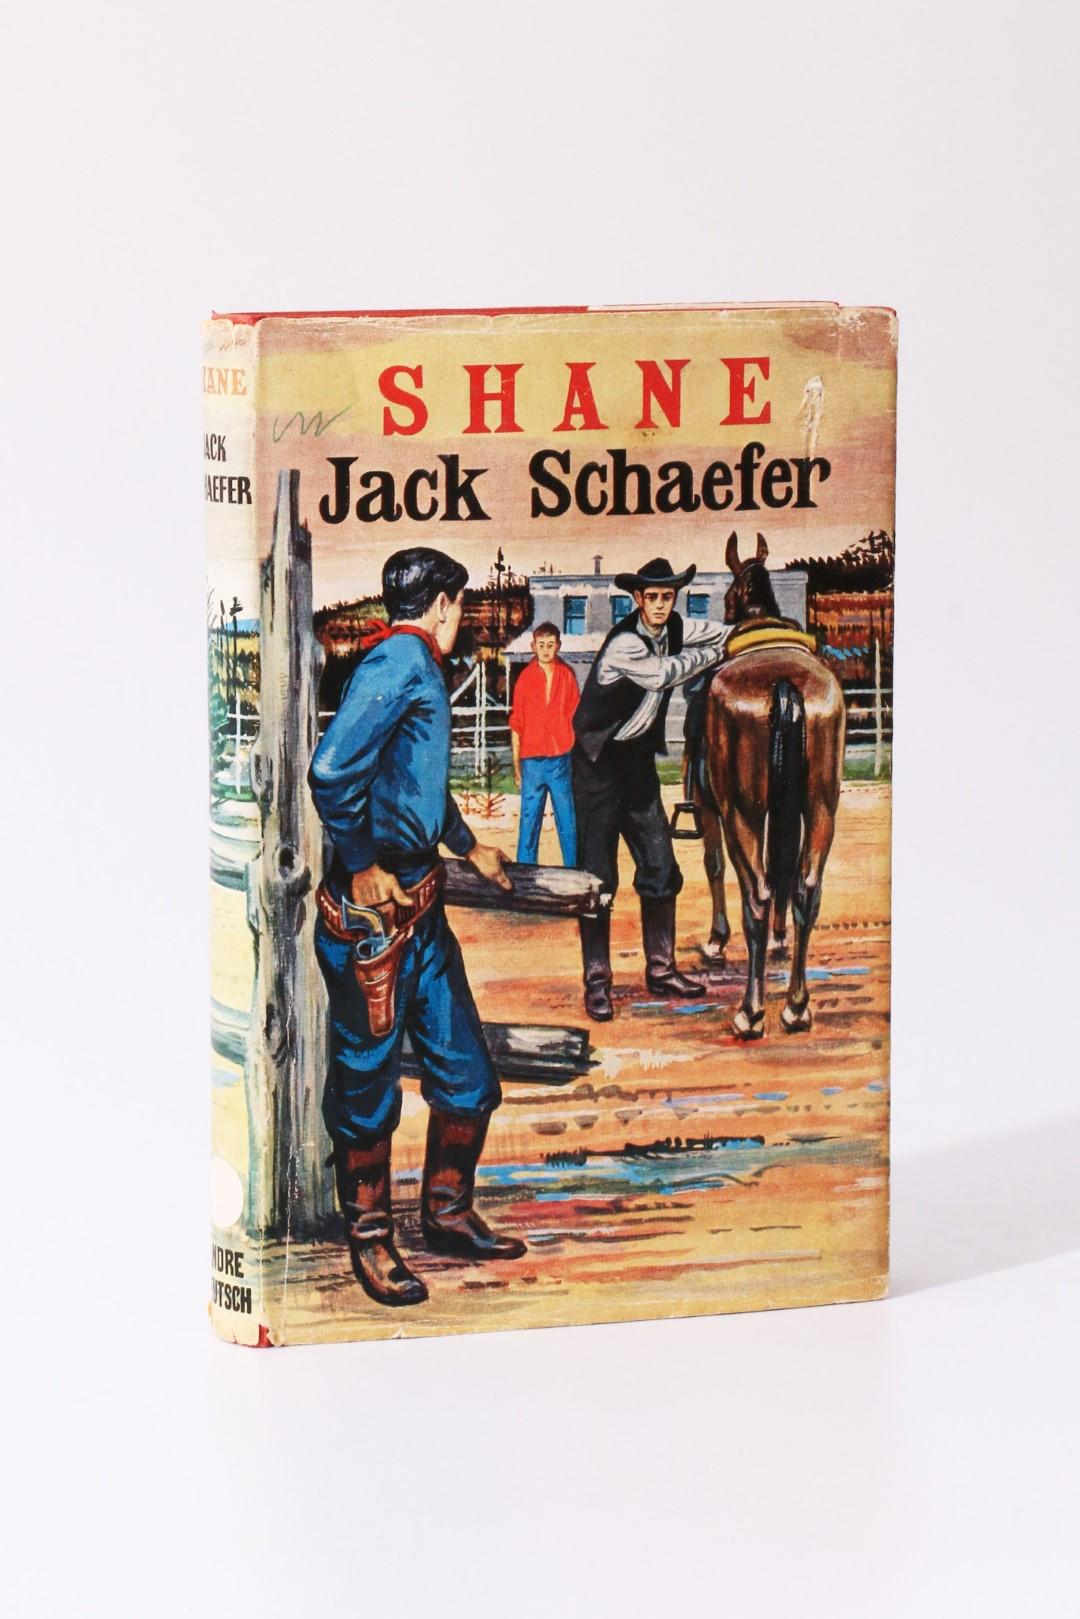 Jack Schaefer - Shane - Andre Deutsch, 1954, First Edition.